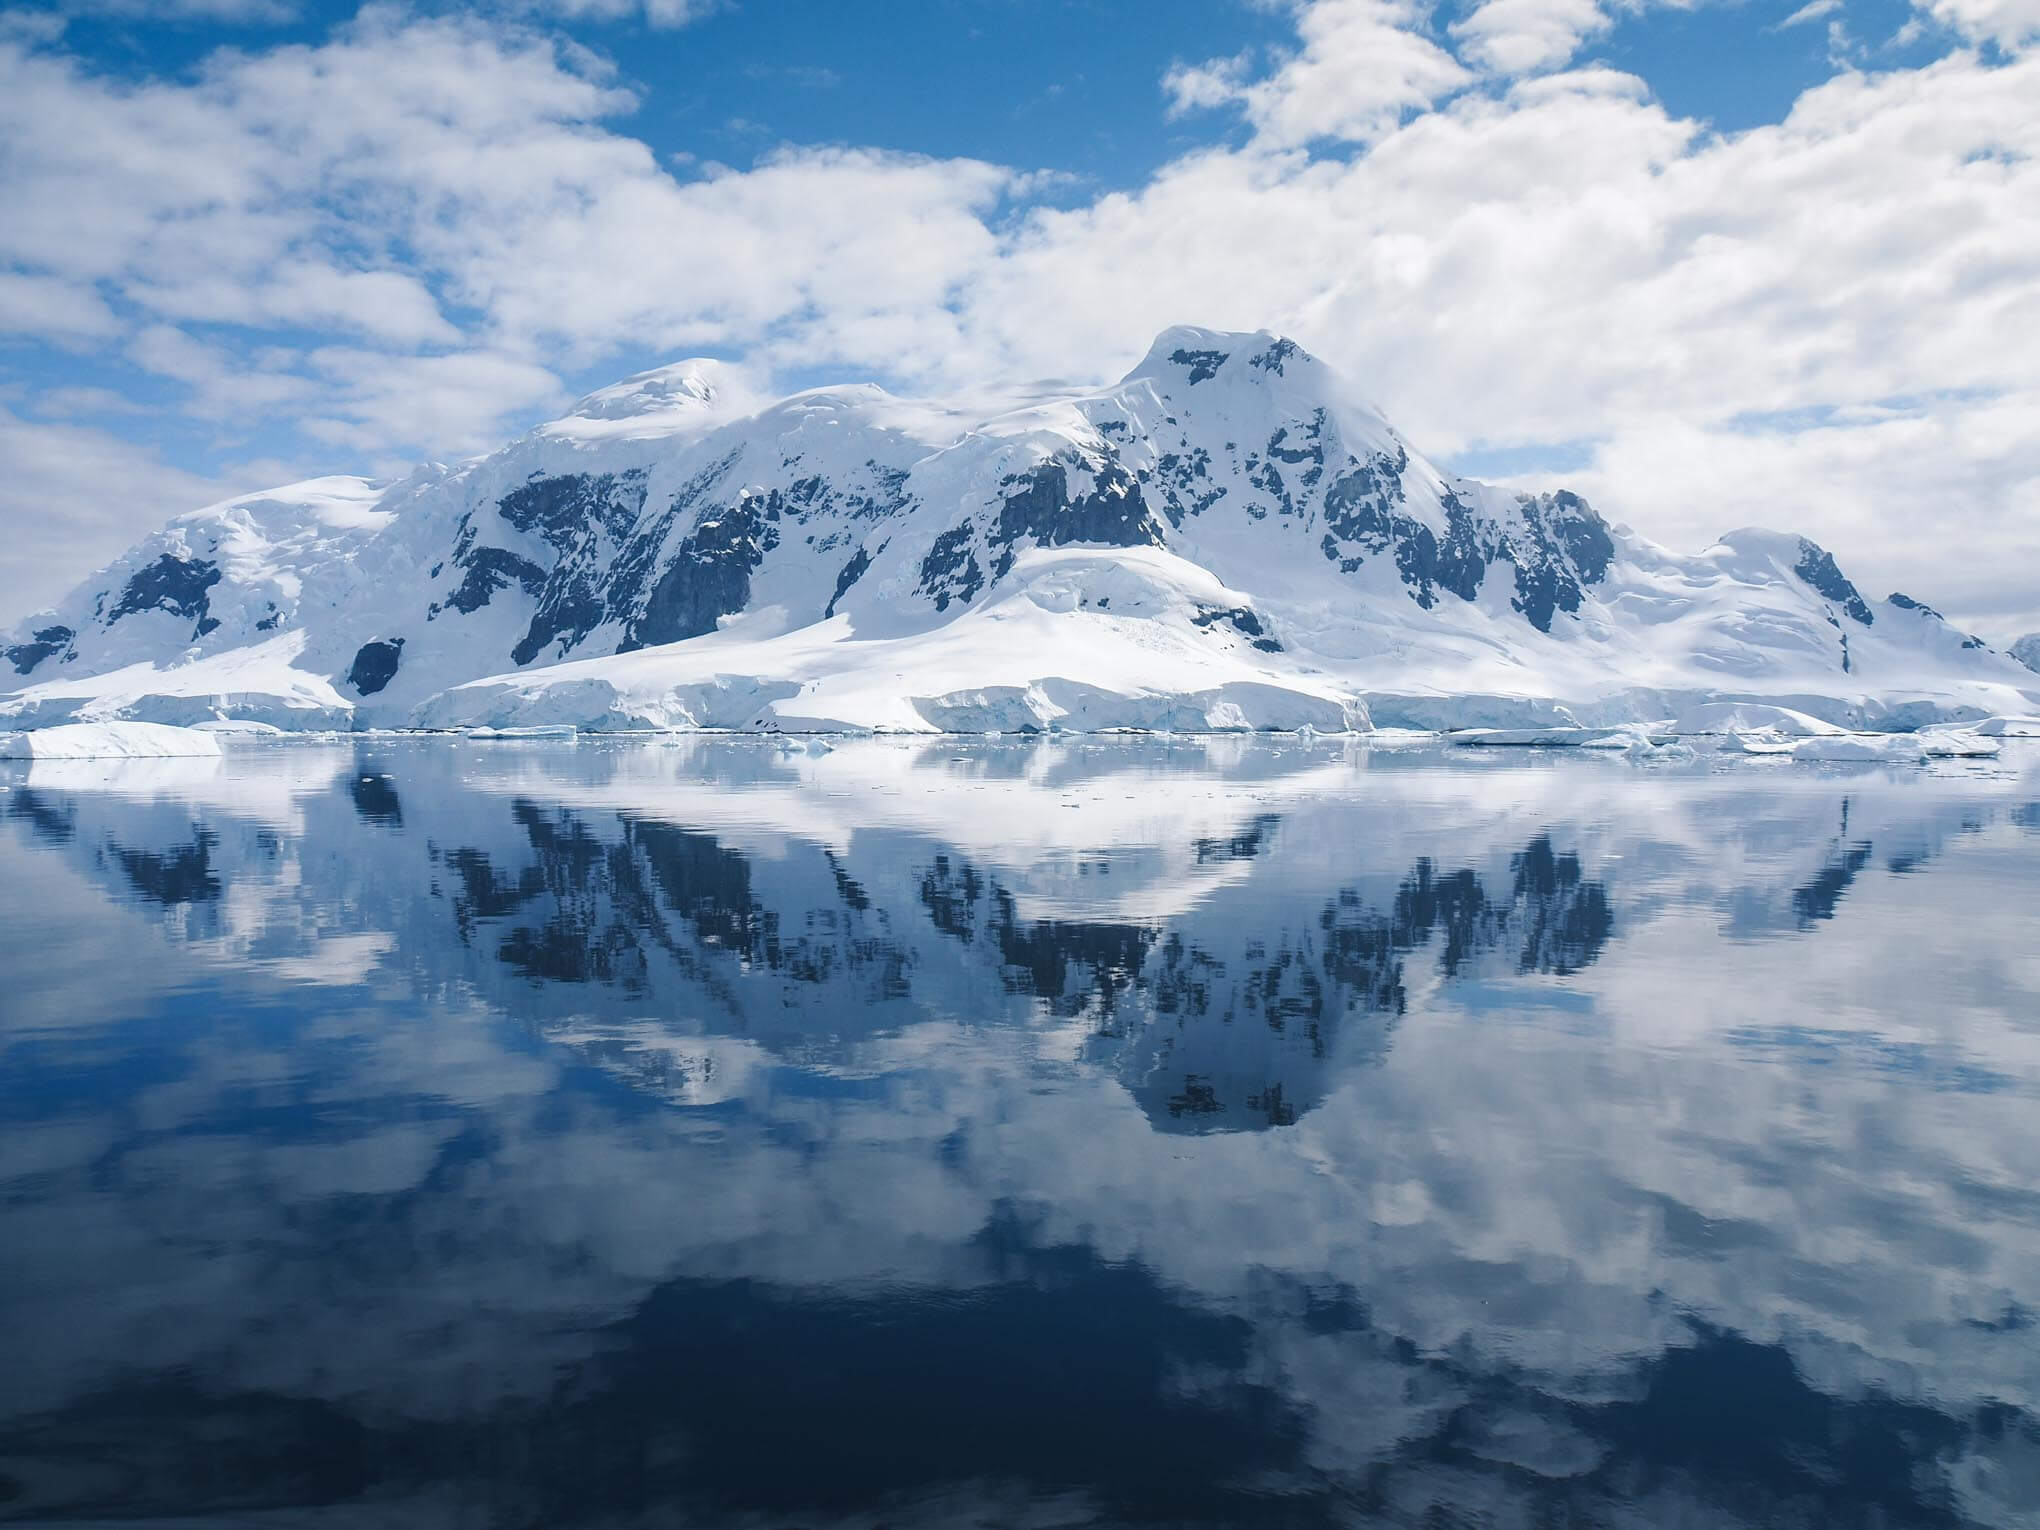 Perfect reflection during the Antarctica Photo Tour with Marco Grassi Photography